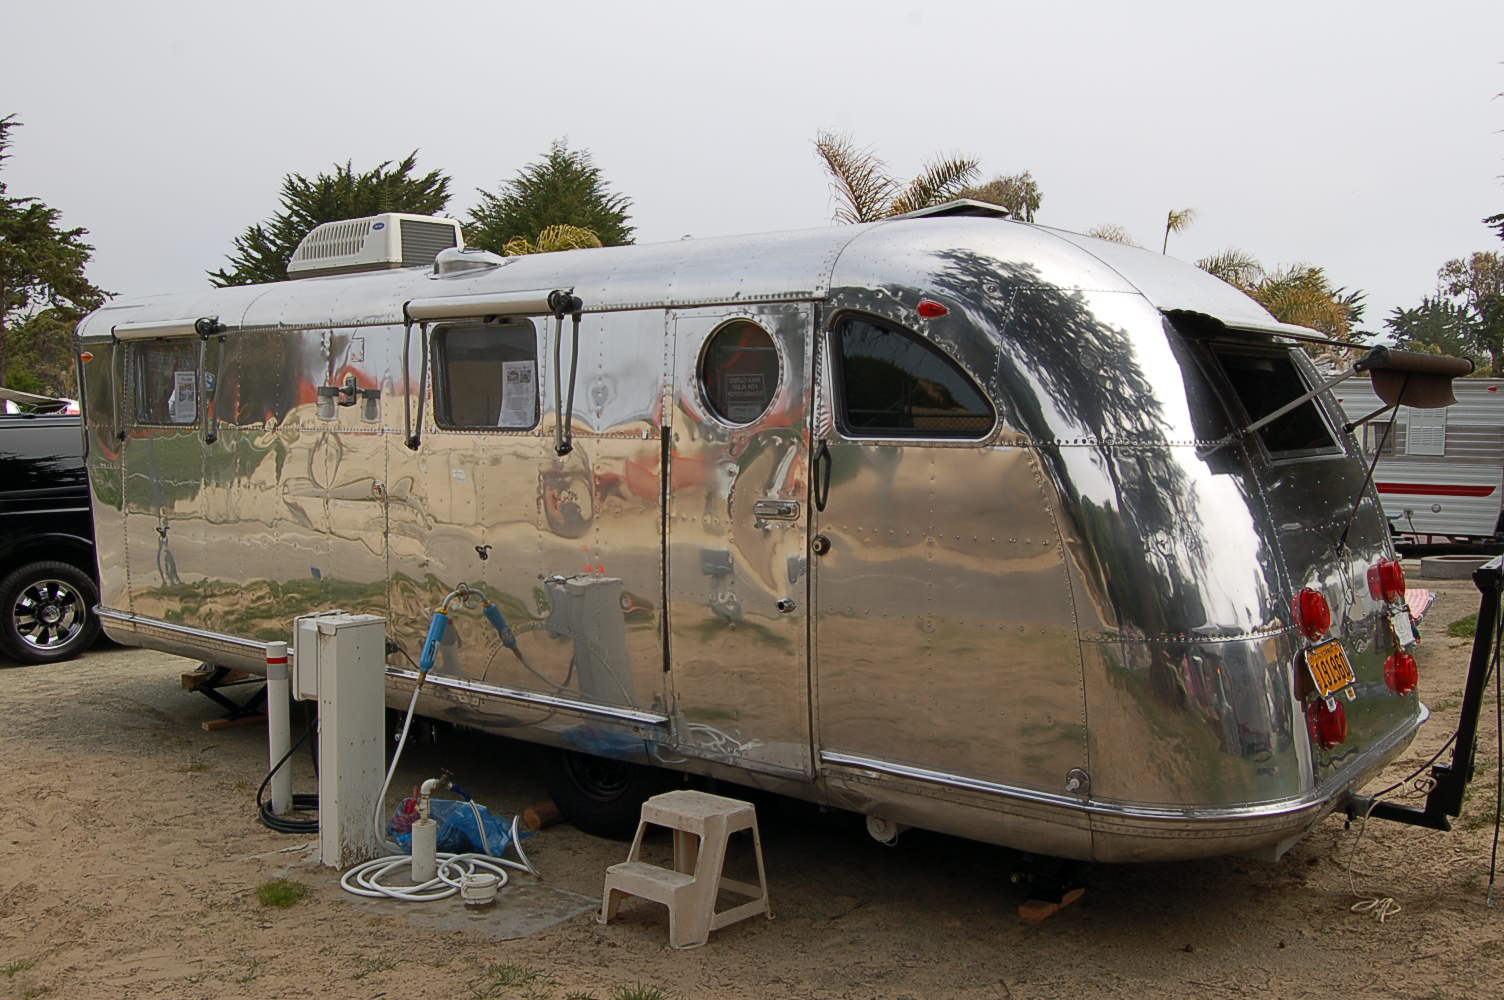 Our Airstream Passion